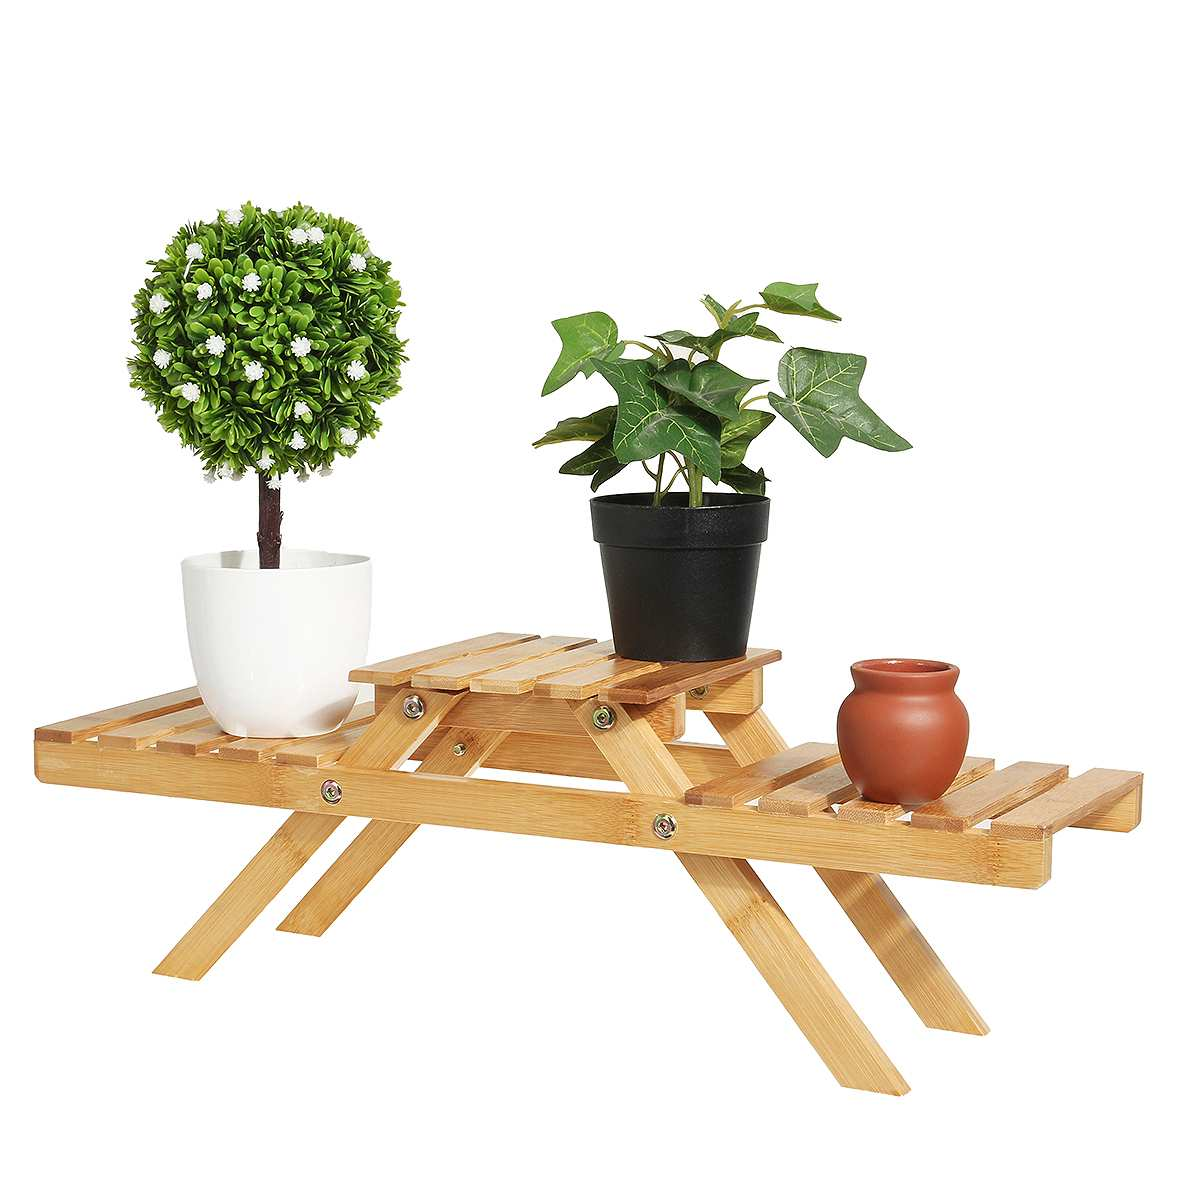 Bamboo Plant Flower Shelf Stand Flower Pot Rack Holder Living Room Table Garden Indoor Outdoor Planter Display Stand Home Decor